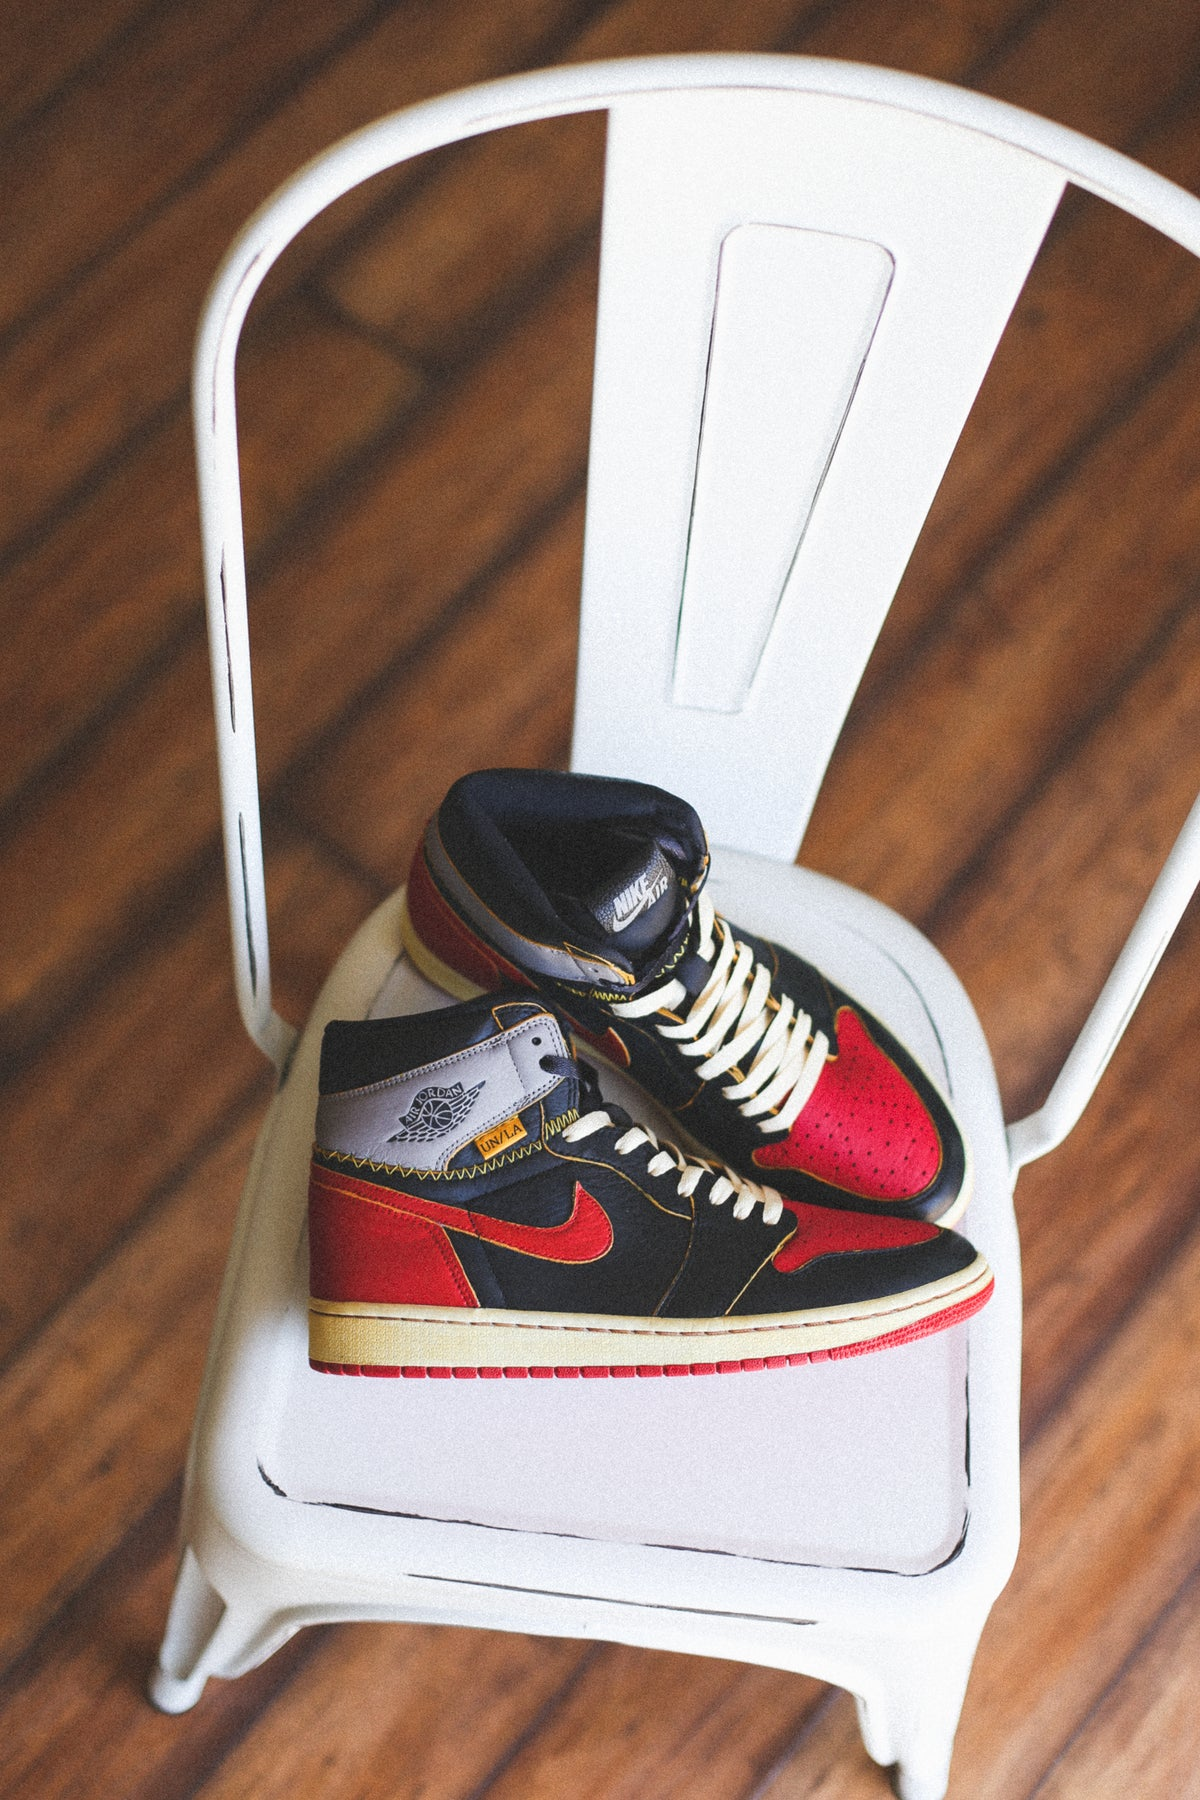 Image of '85 union 1 bred x shadows